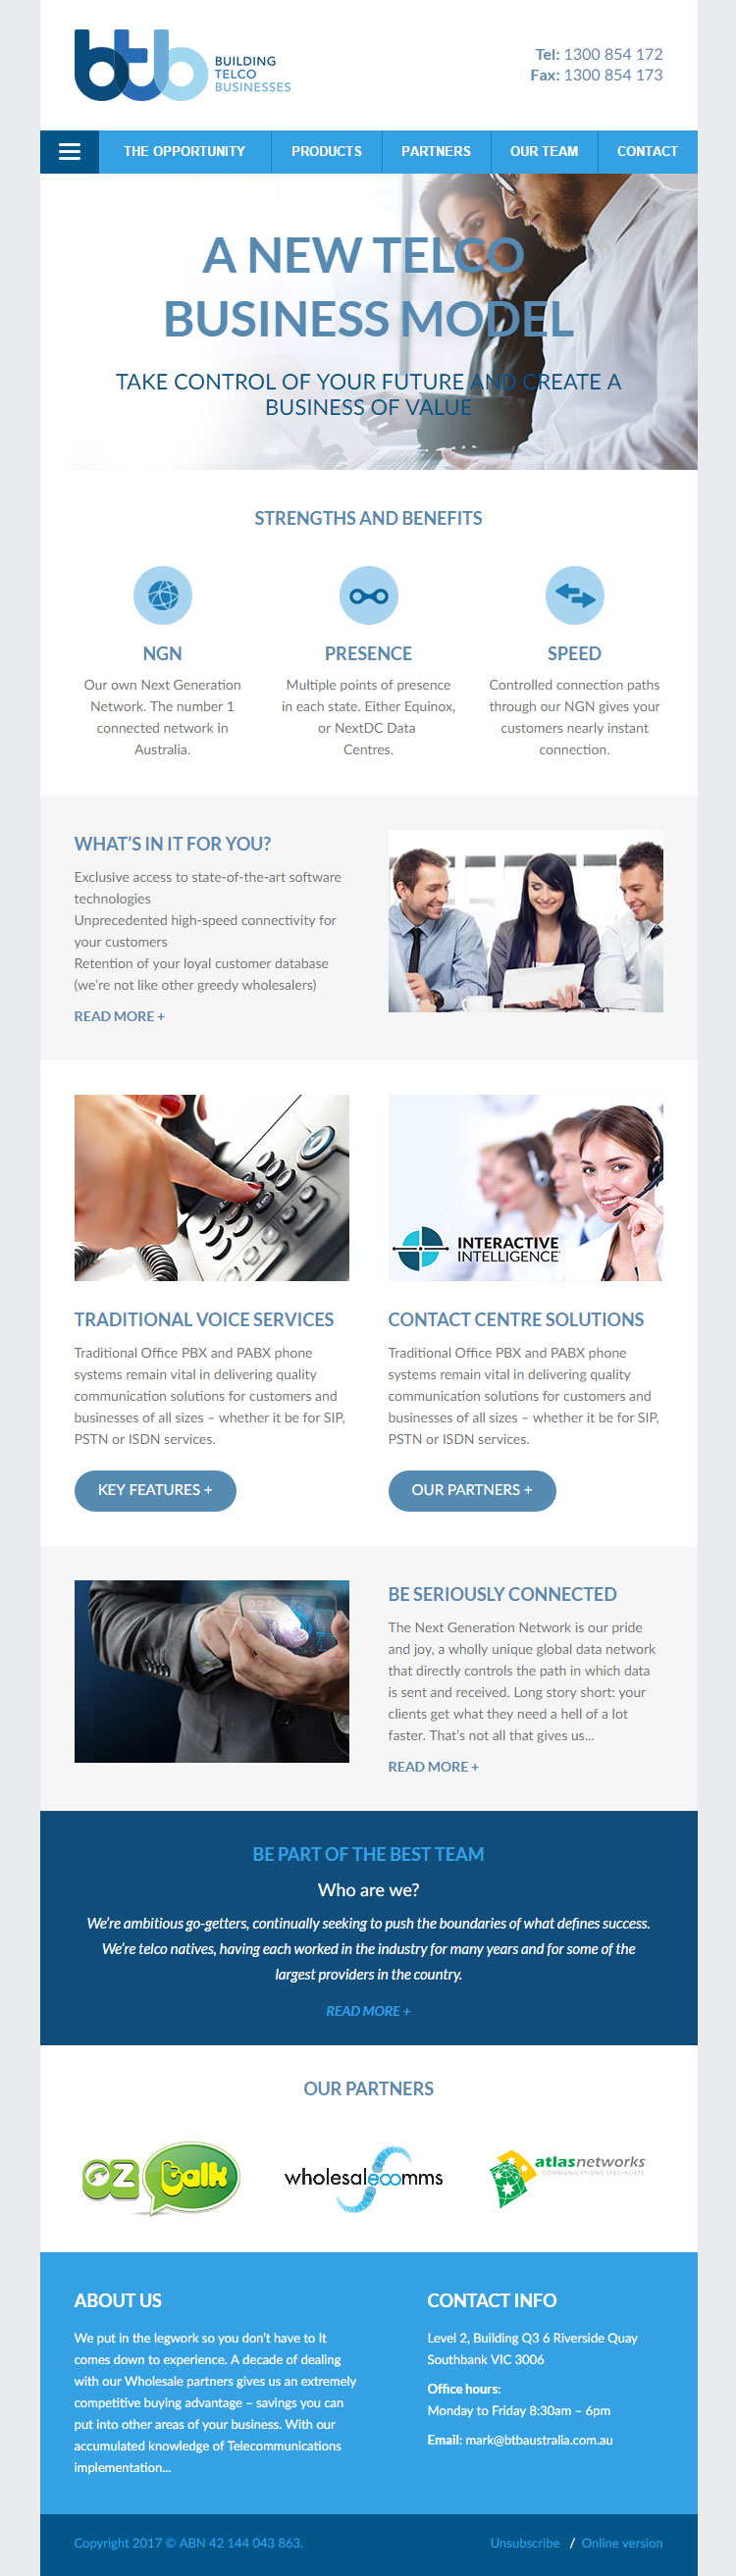 Building telco businesses email template croovs community of building telco businesses email template croovs community of designers pronofoot35fo Gallery